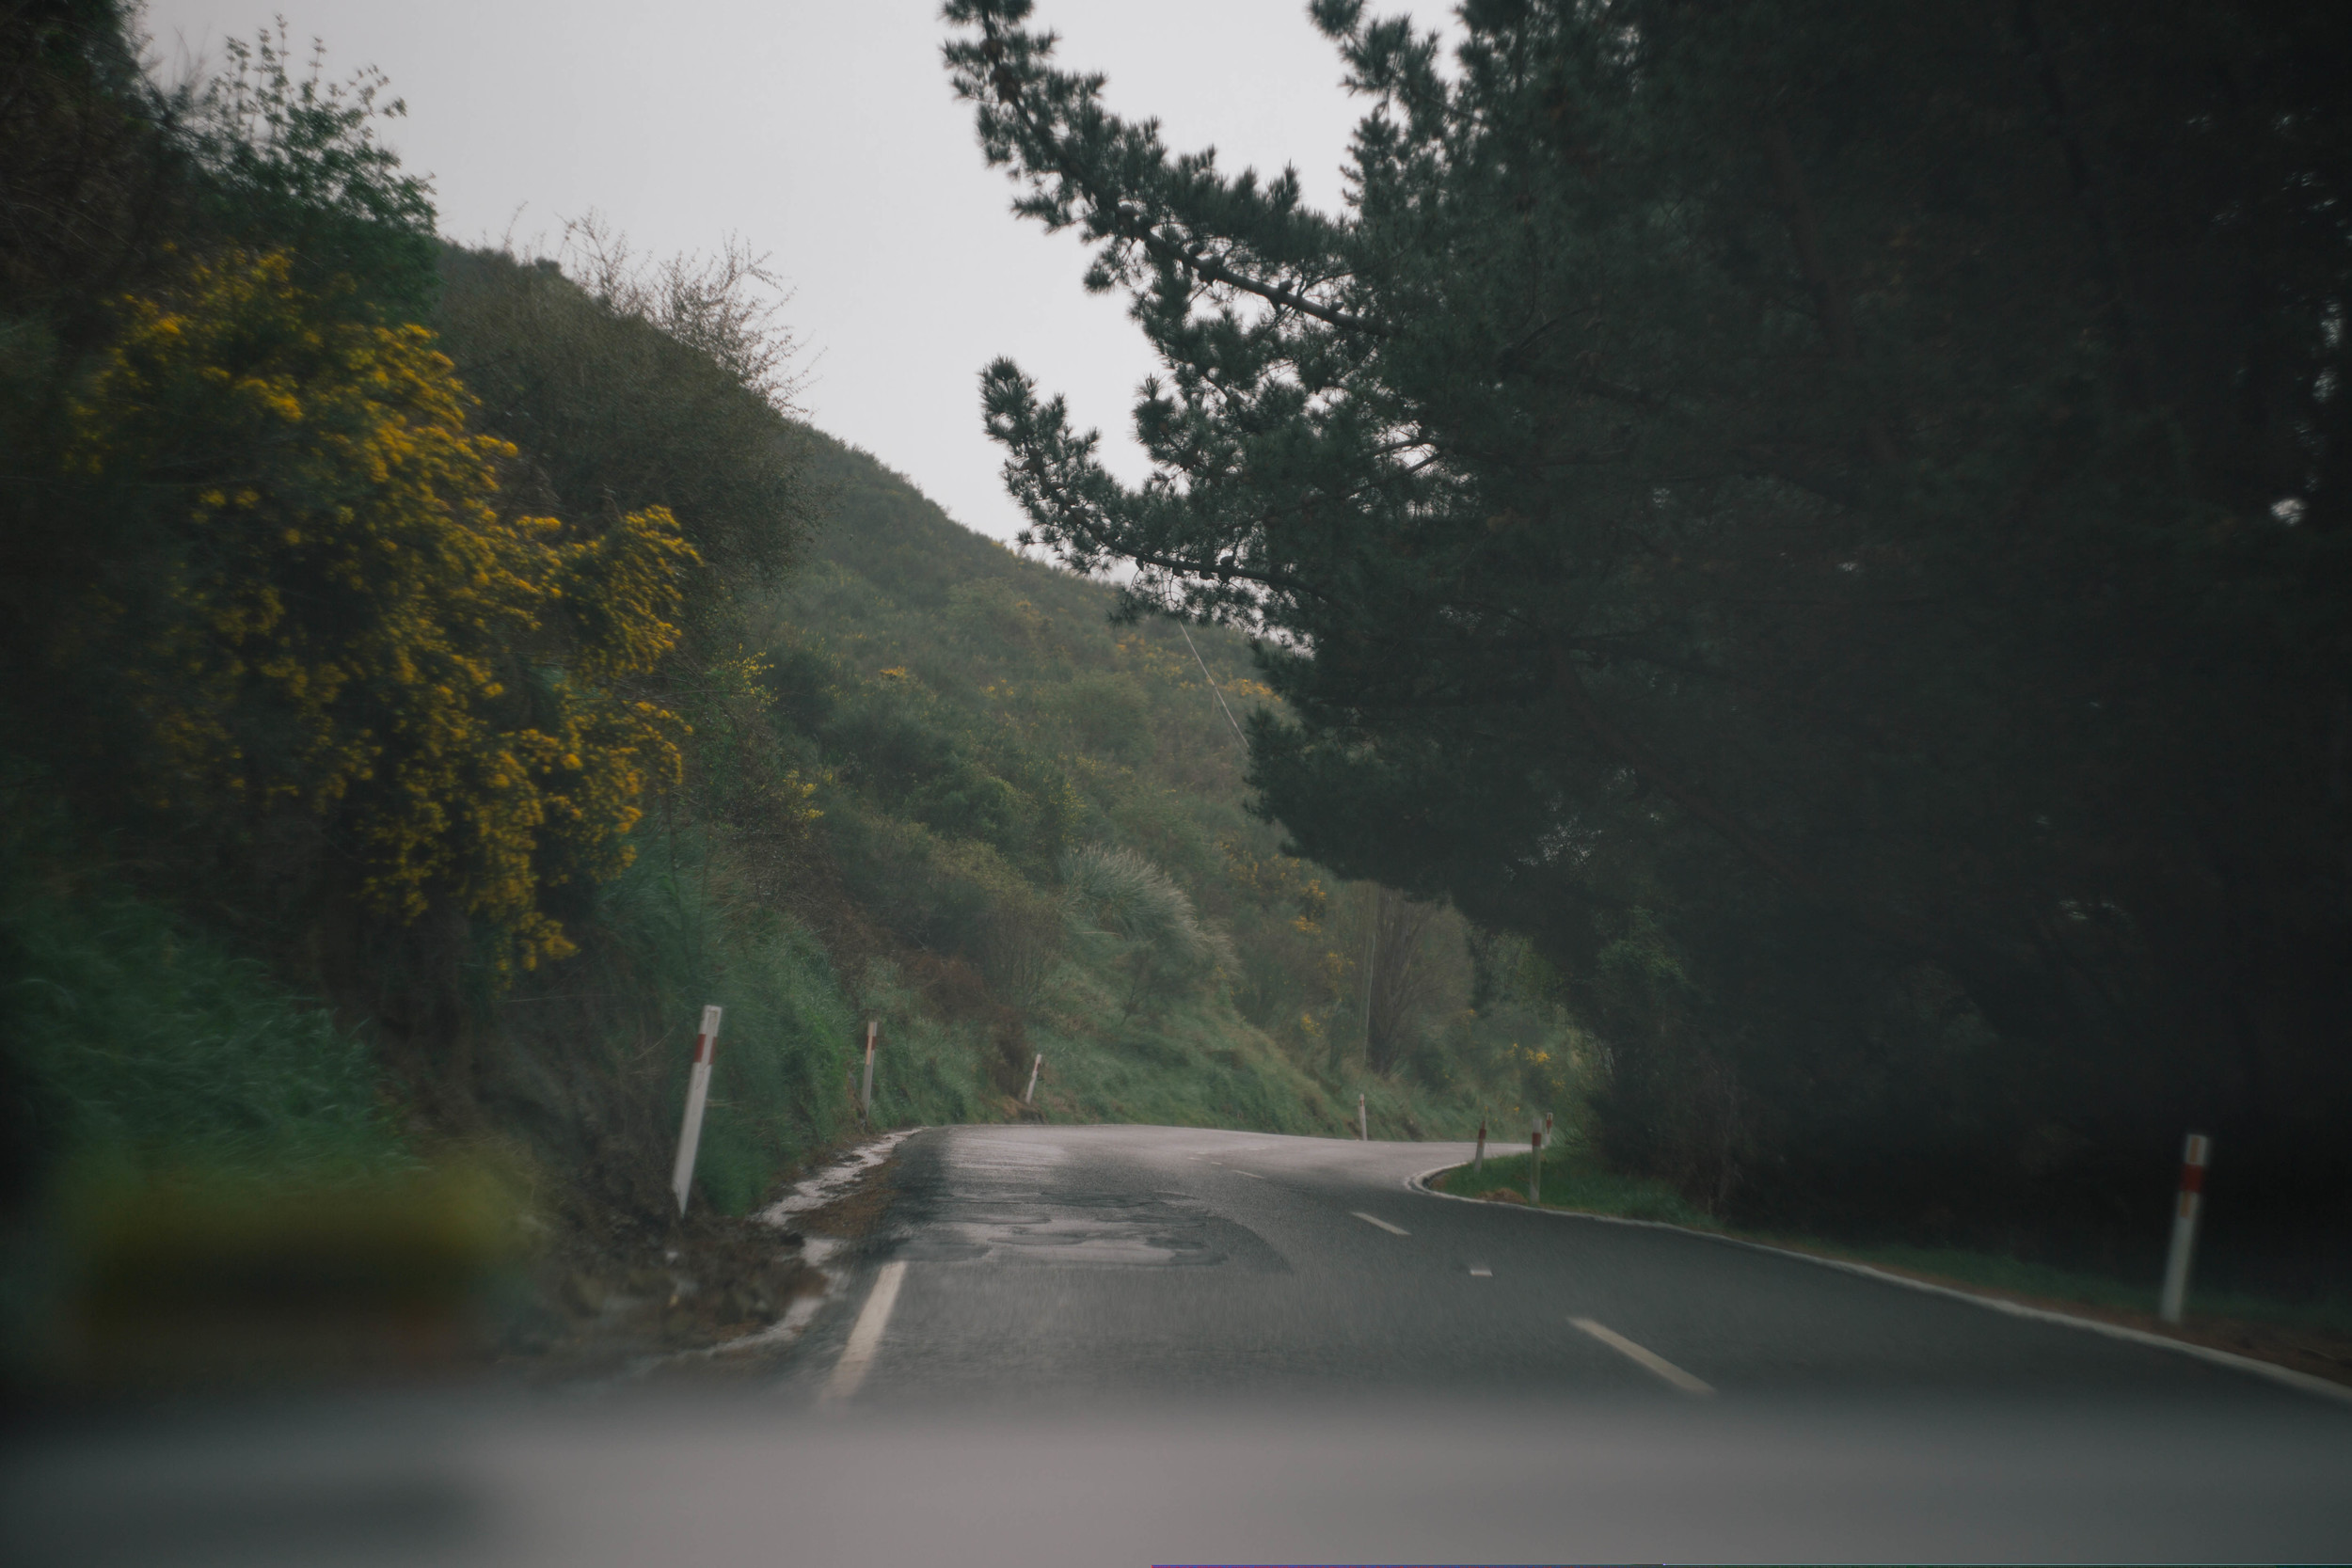 taken by lolra during our drive to see Tim's and her's section in Cass Bay